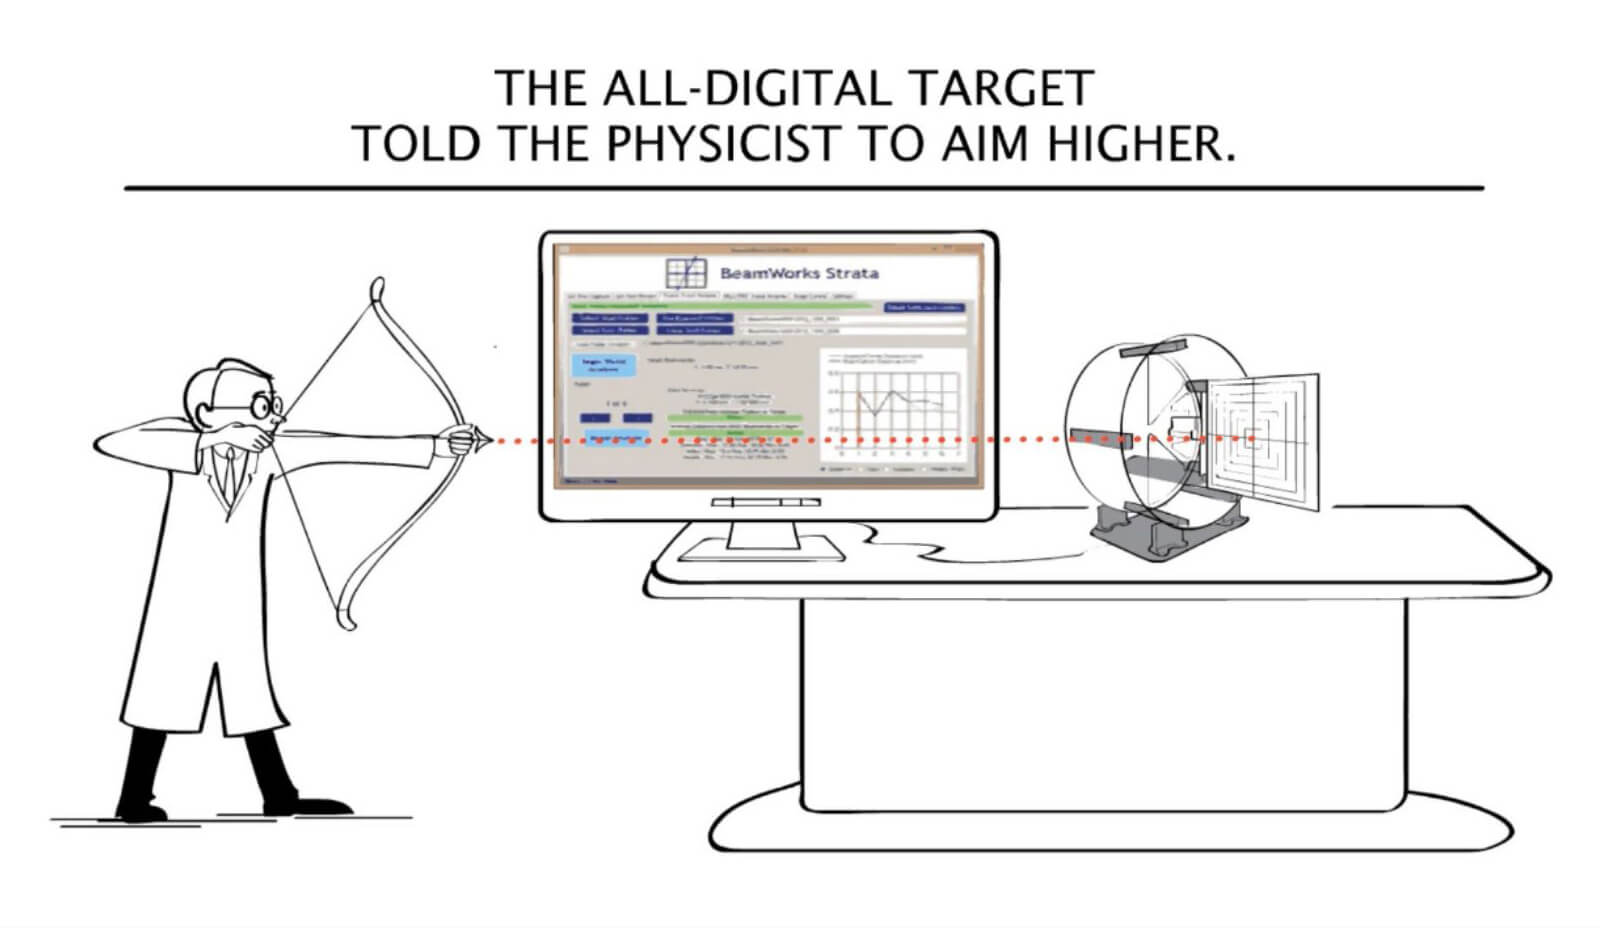 The all-digital target told the physicist to aim higher.